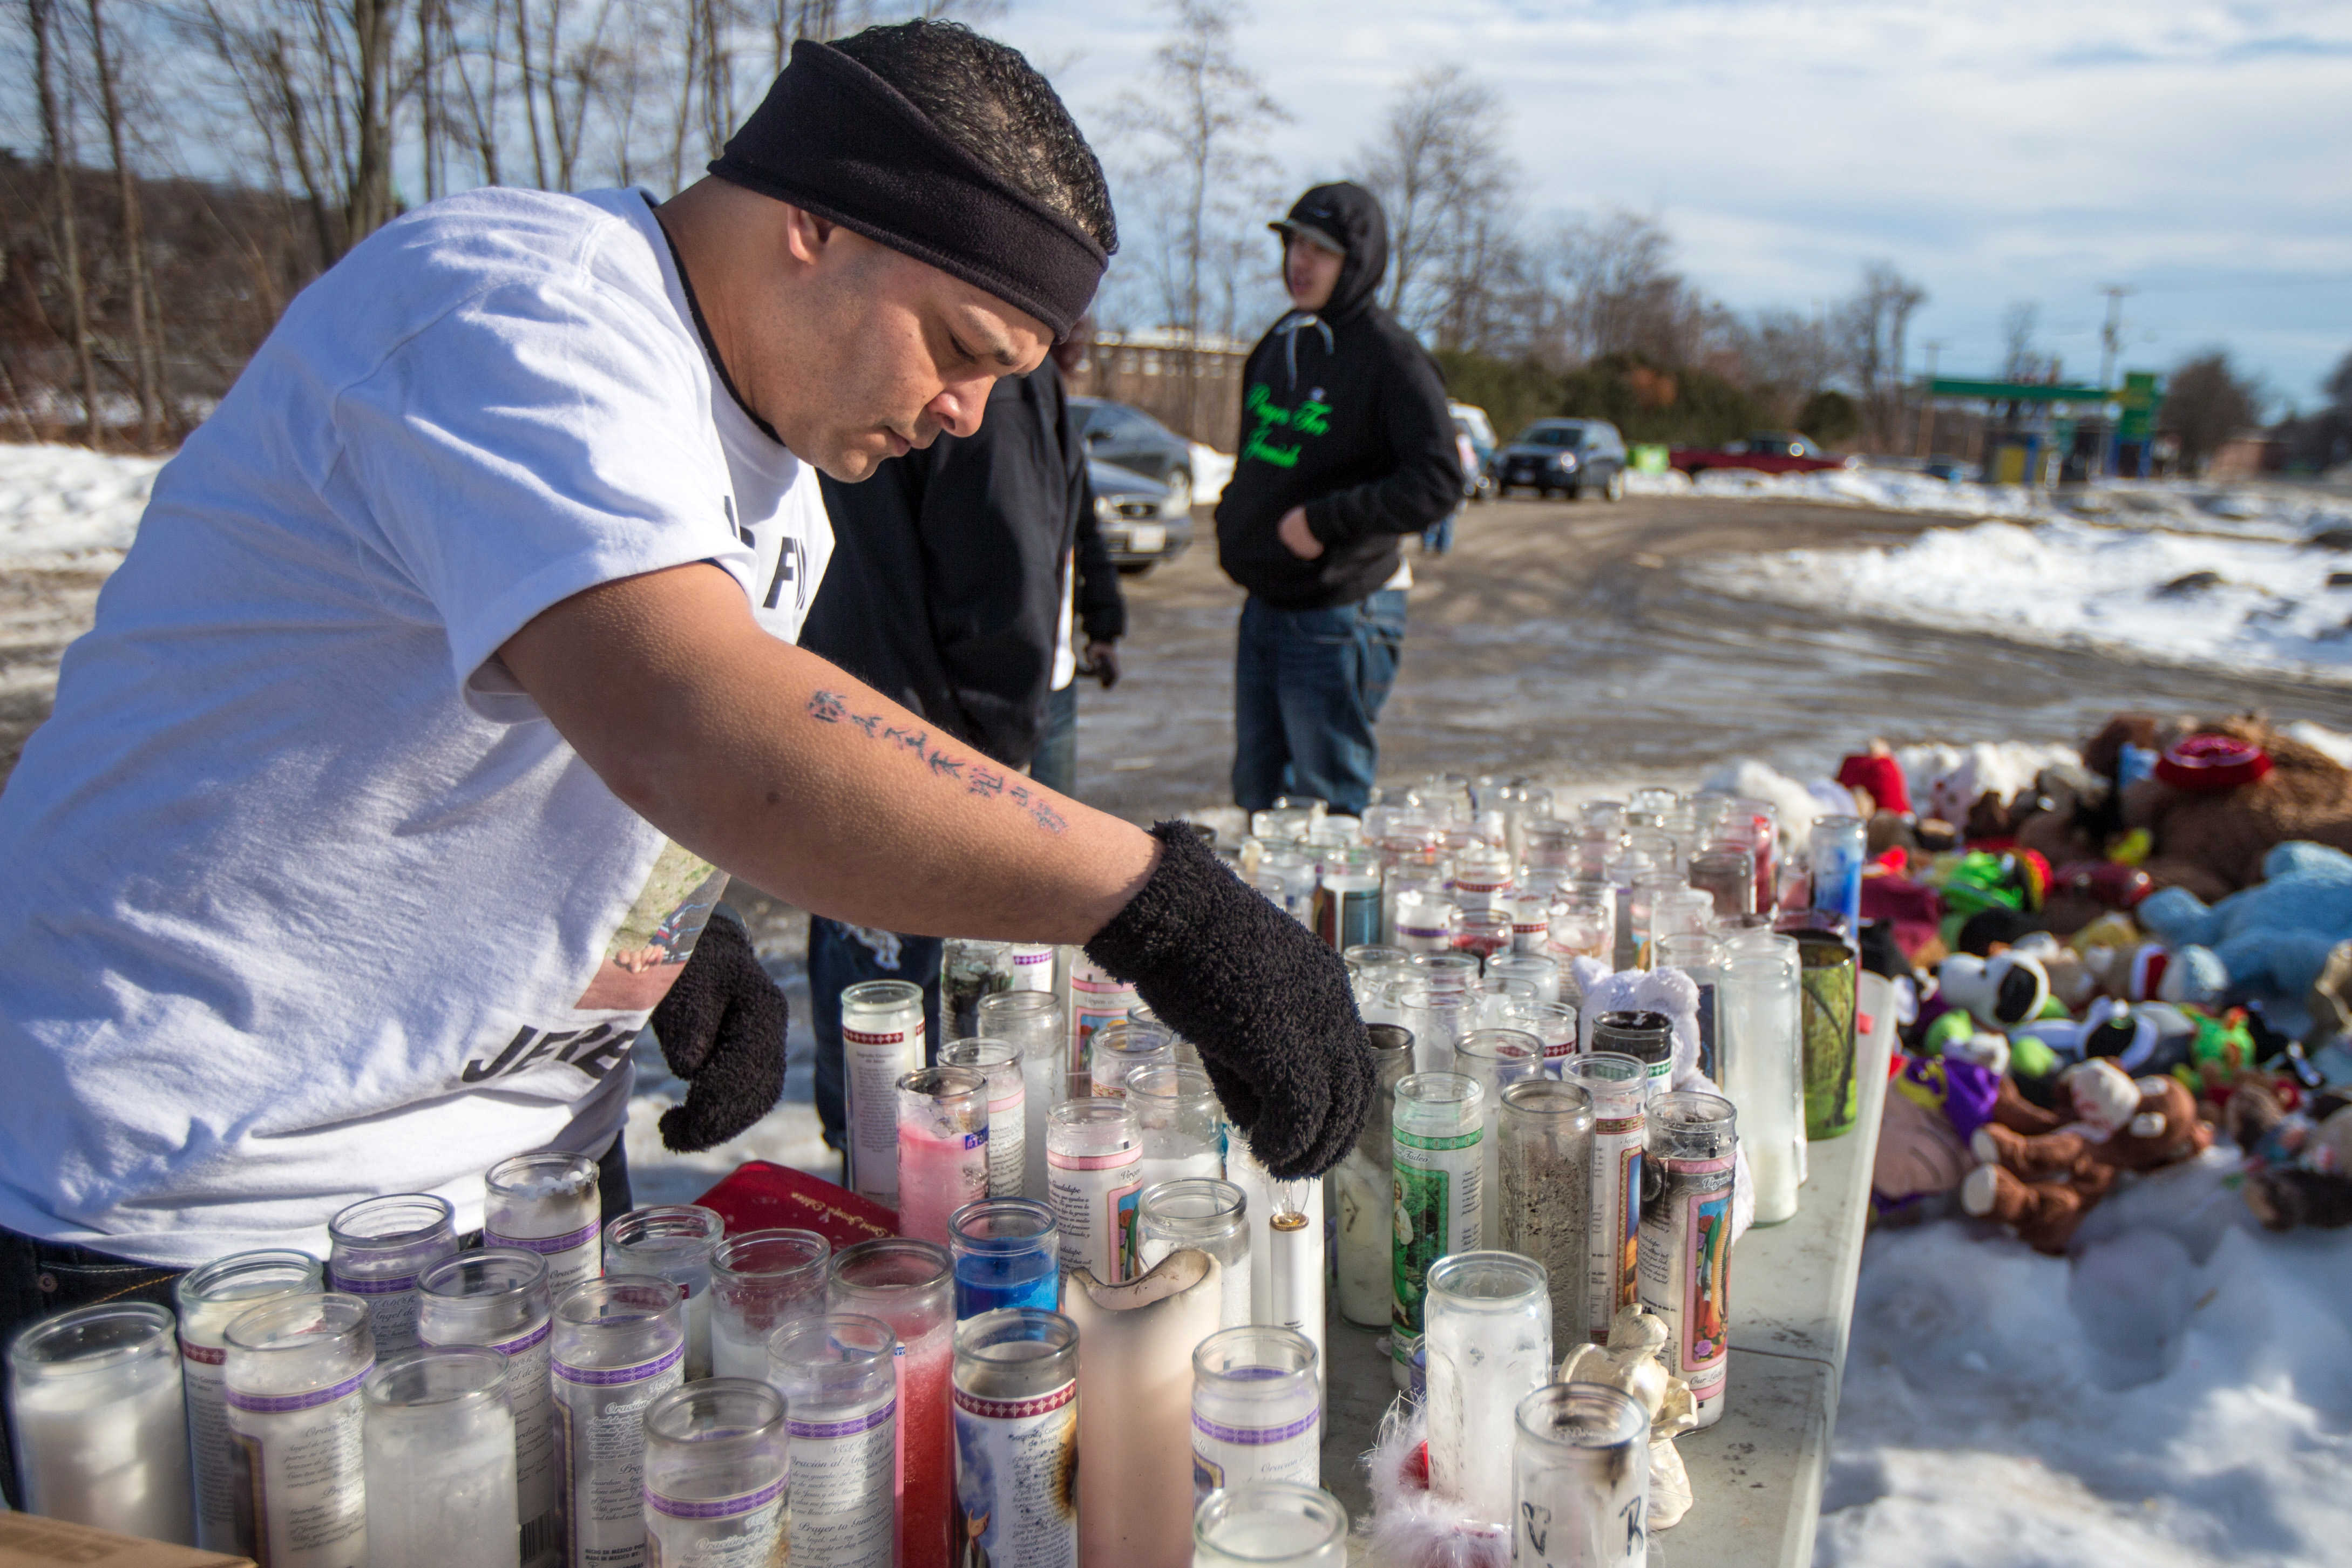 Jose Oliver visited a memorial of toys and candles set up in front of 276 Kimball Street in Fitchburg after the disappearance of his son, Jeremiah Oliver.